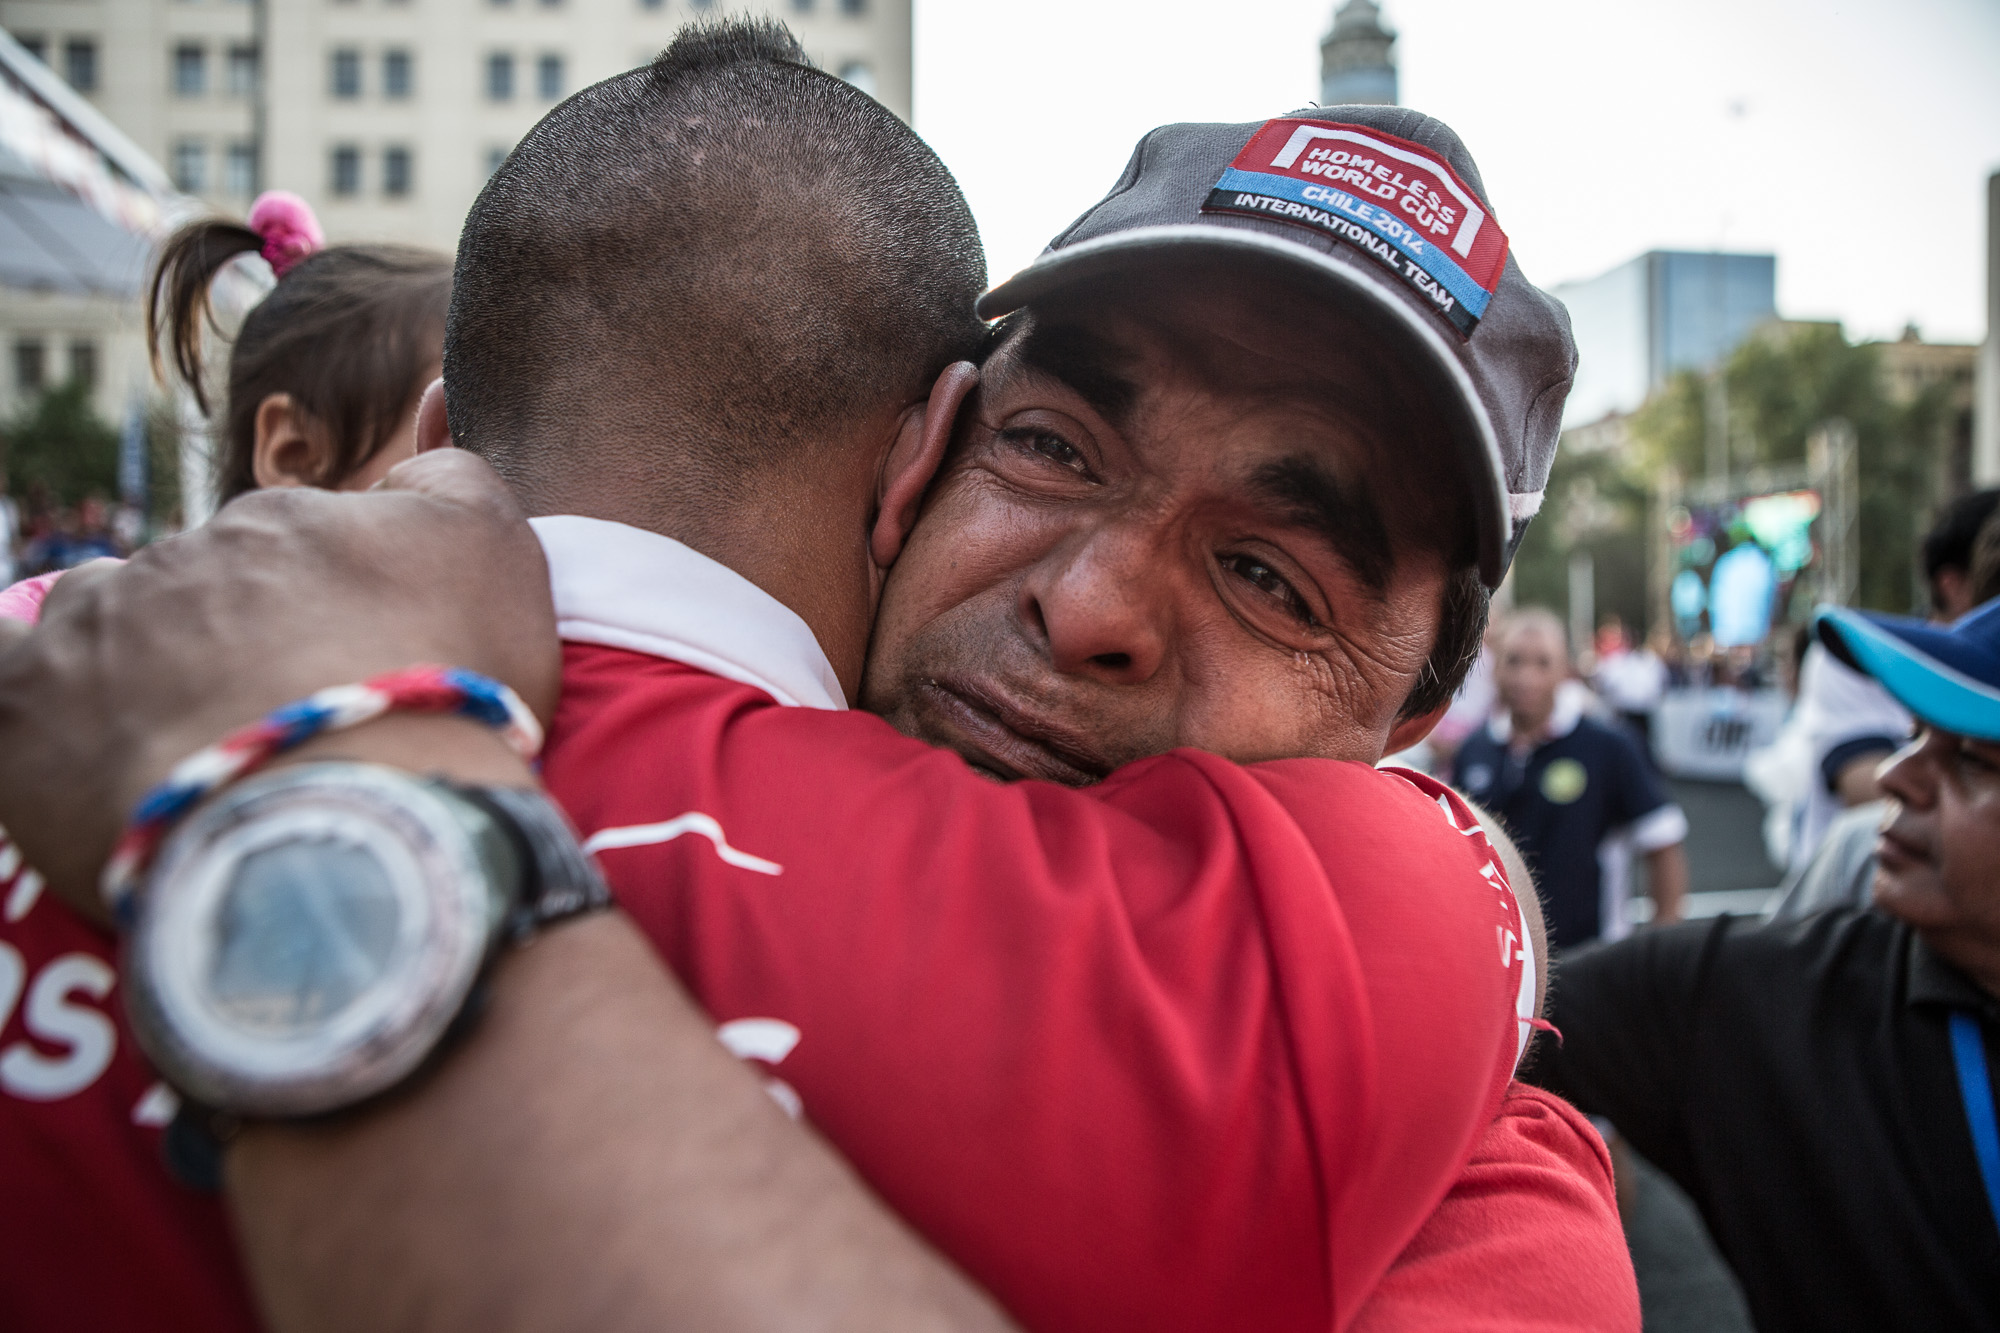 Luis a general Chilean handyman and local assistant for the event is overcome with emotion as he embraces the Chilean captain after their victory in the final. Being a fanatical street football fan, he travelled to Santiago purely in order to participate in the running of the event.  With next to no english skills, he endeared himself to everybody becoming one of the unofficial faces of the week long tournament.  With big ambitions for the future, he hopes to learn full English, and move to Europe to start his own street football organisation.